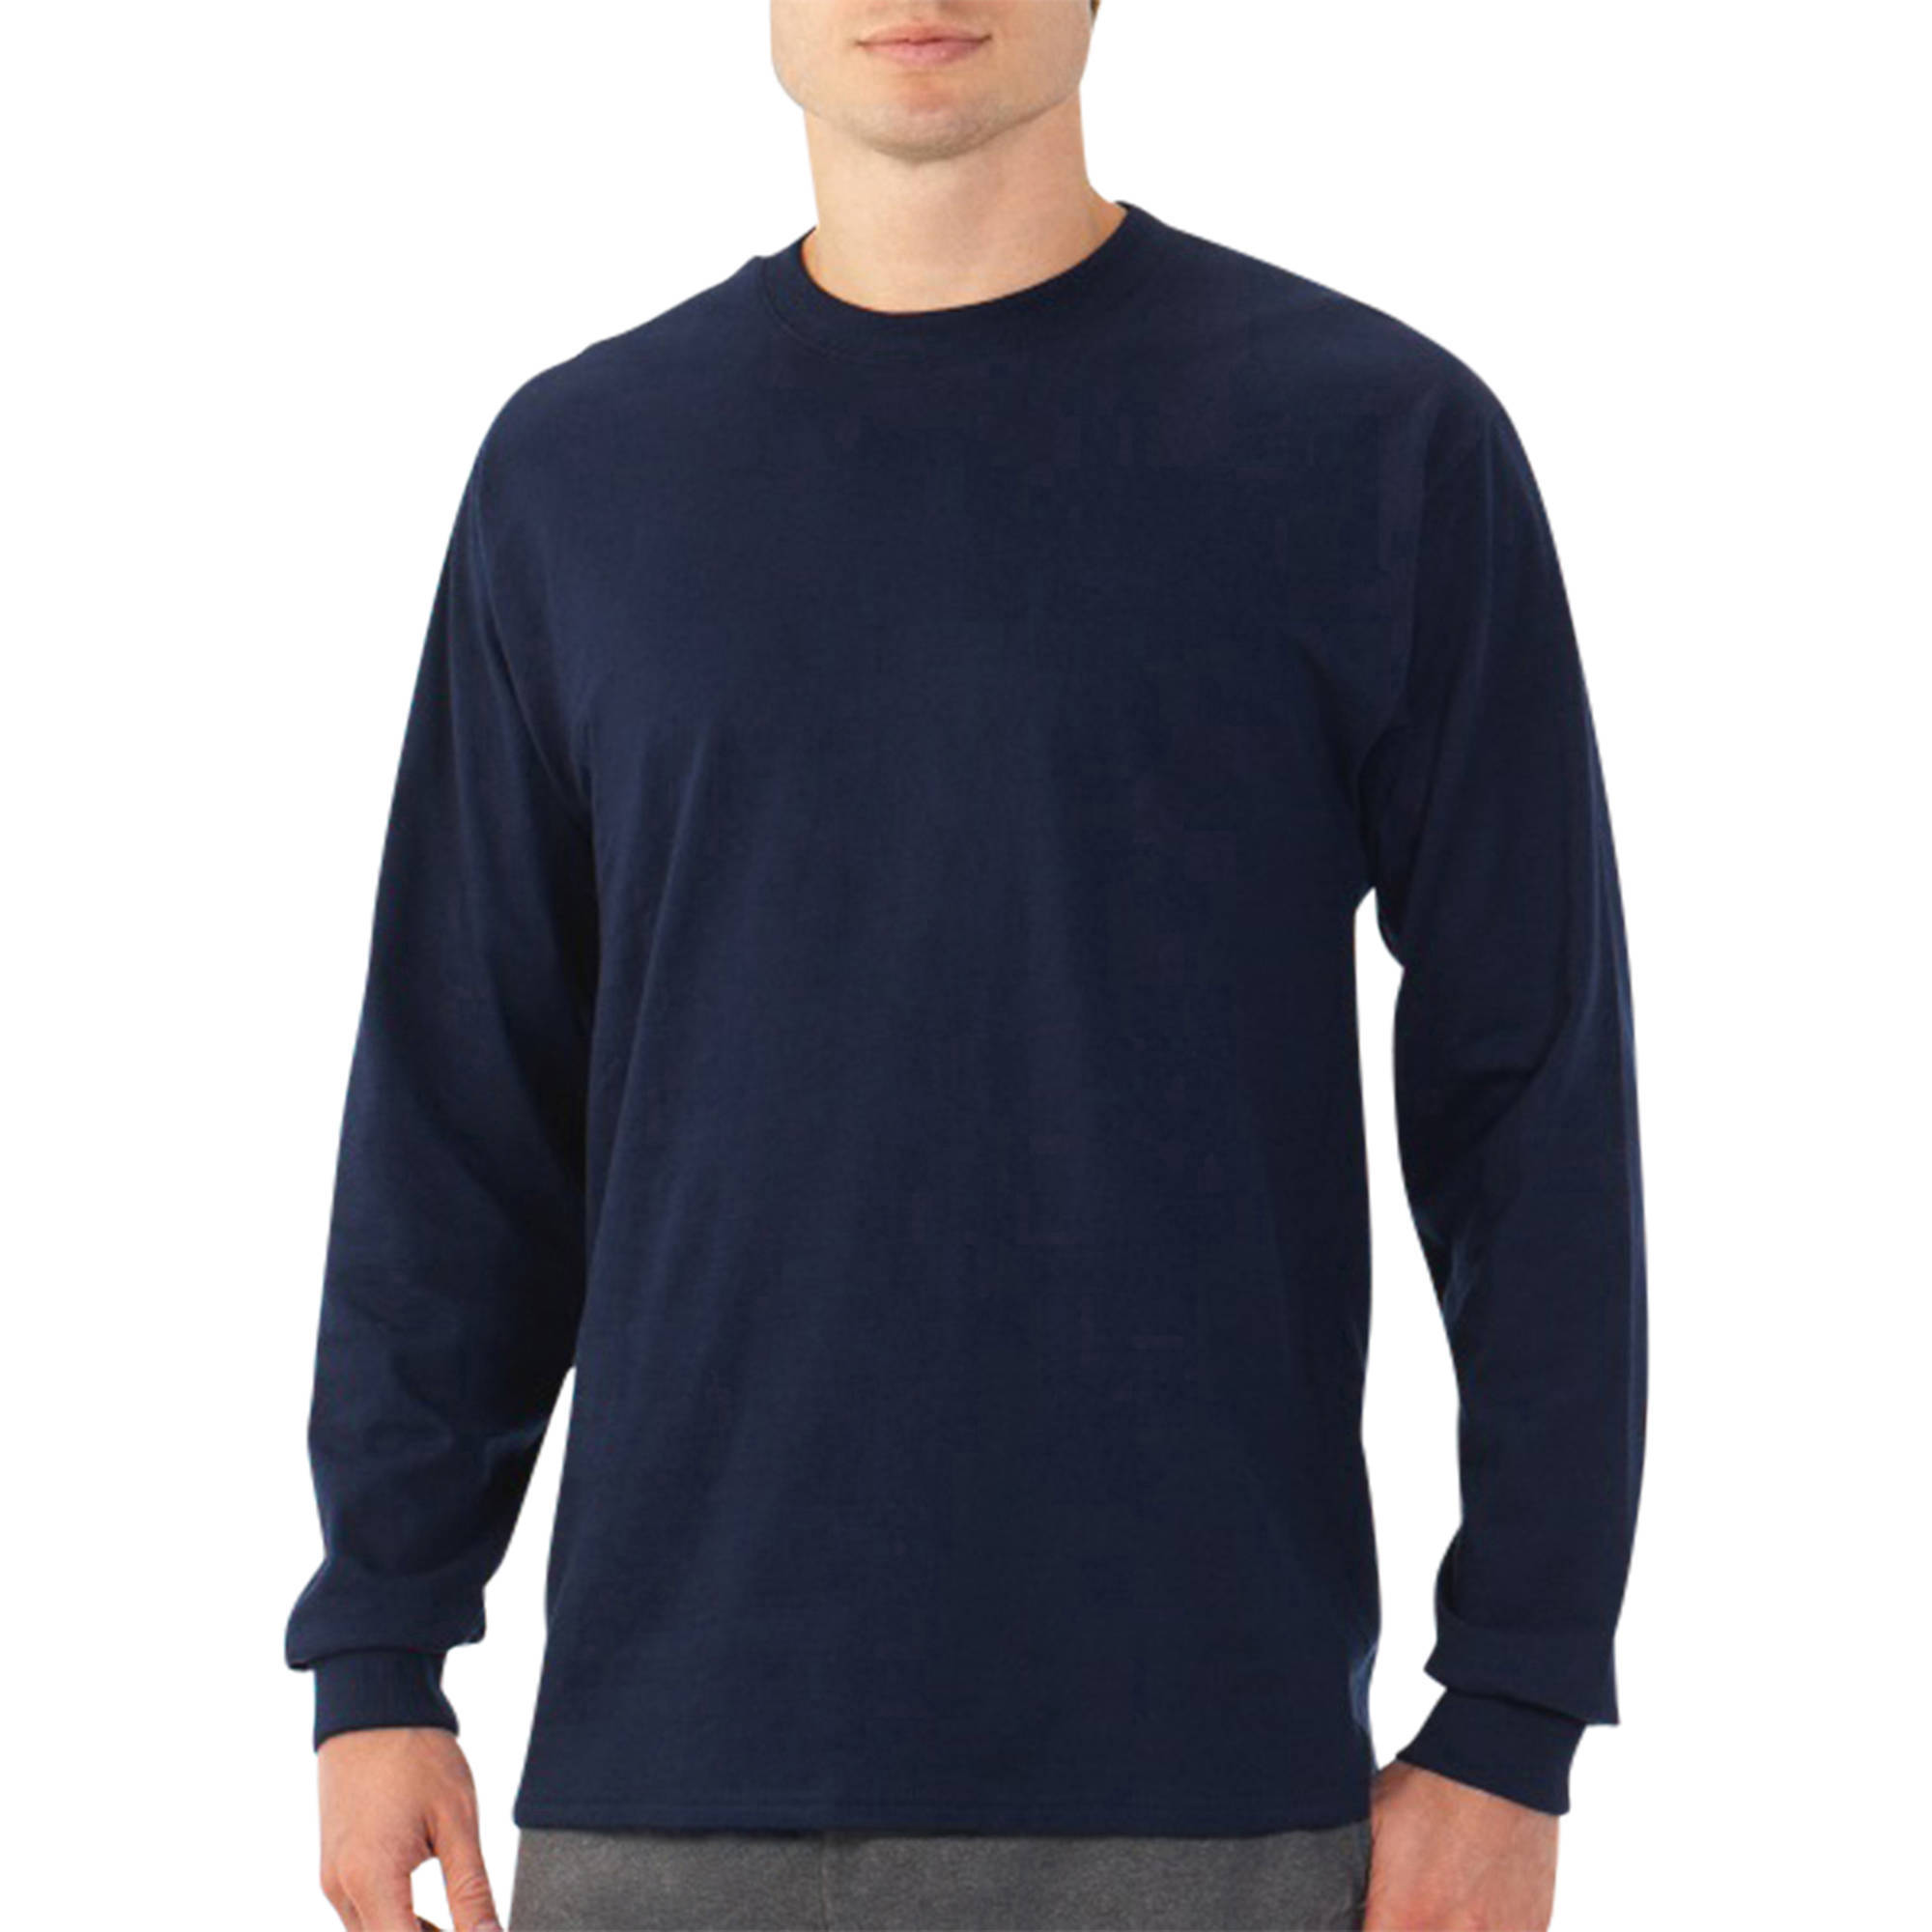 Fruit of the Loom Men's Long Sleeve Crew T-Shirt